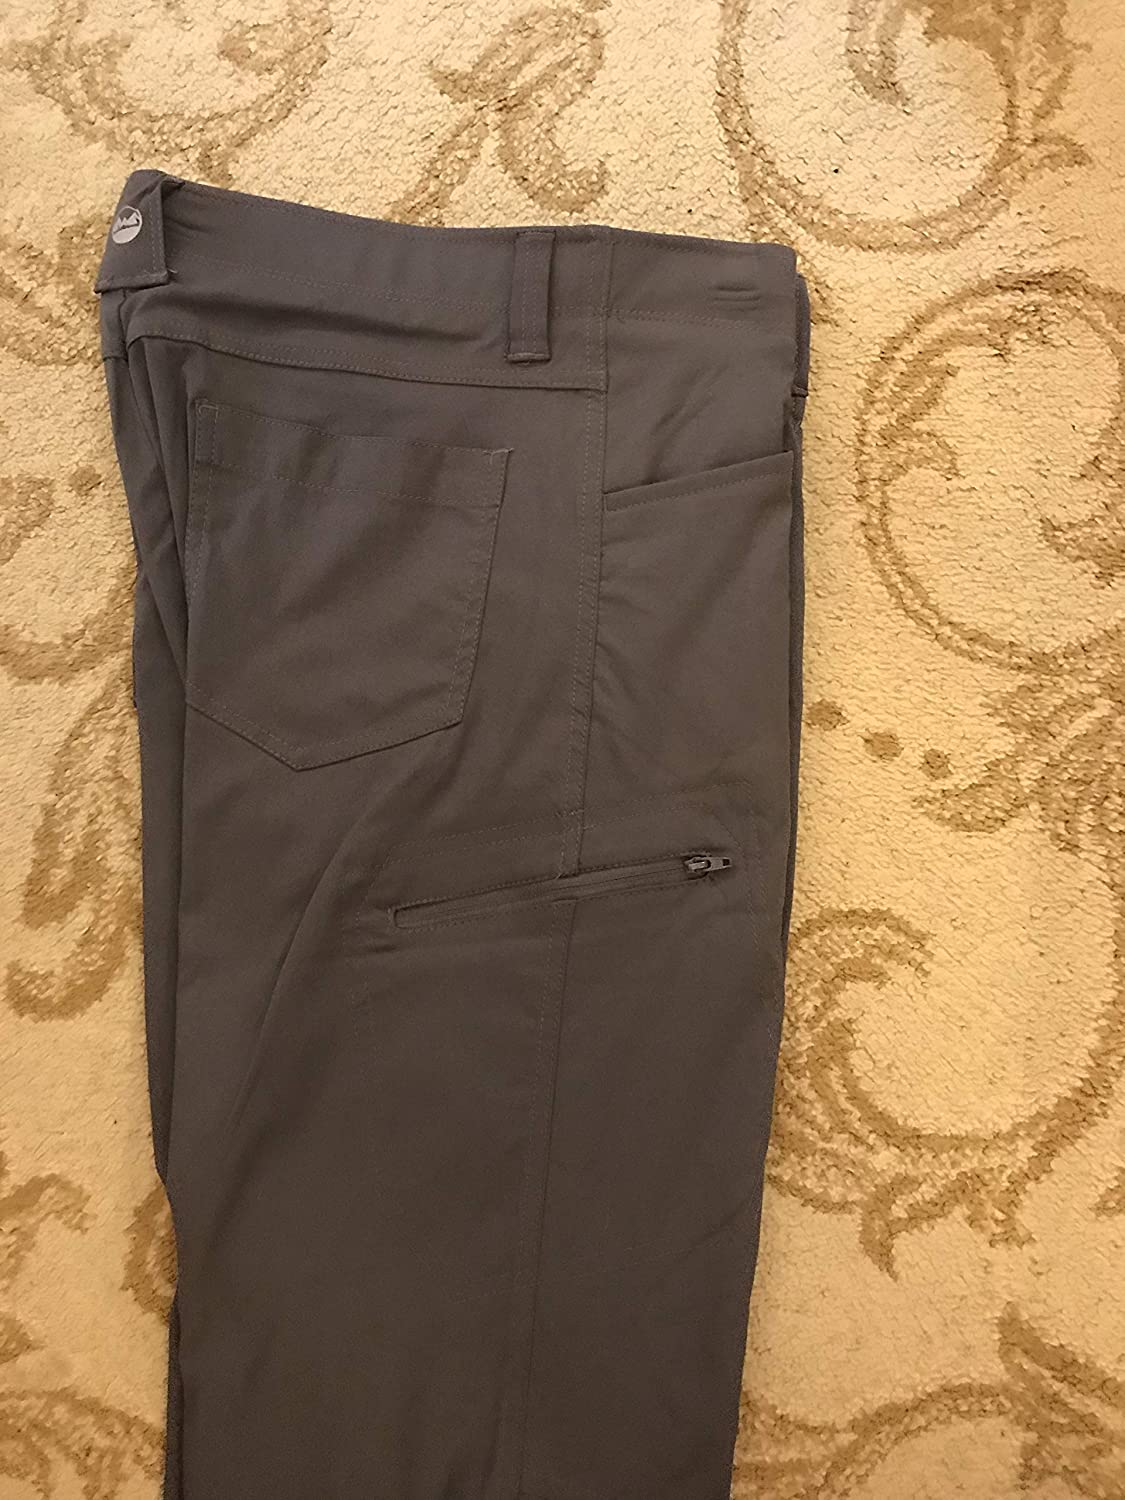 Wrangler Gray Outdoor Performance Cargo Pants